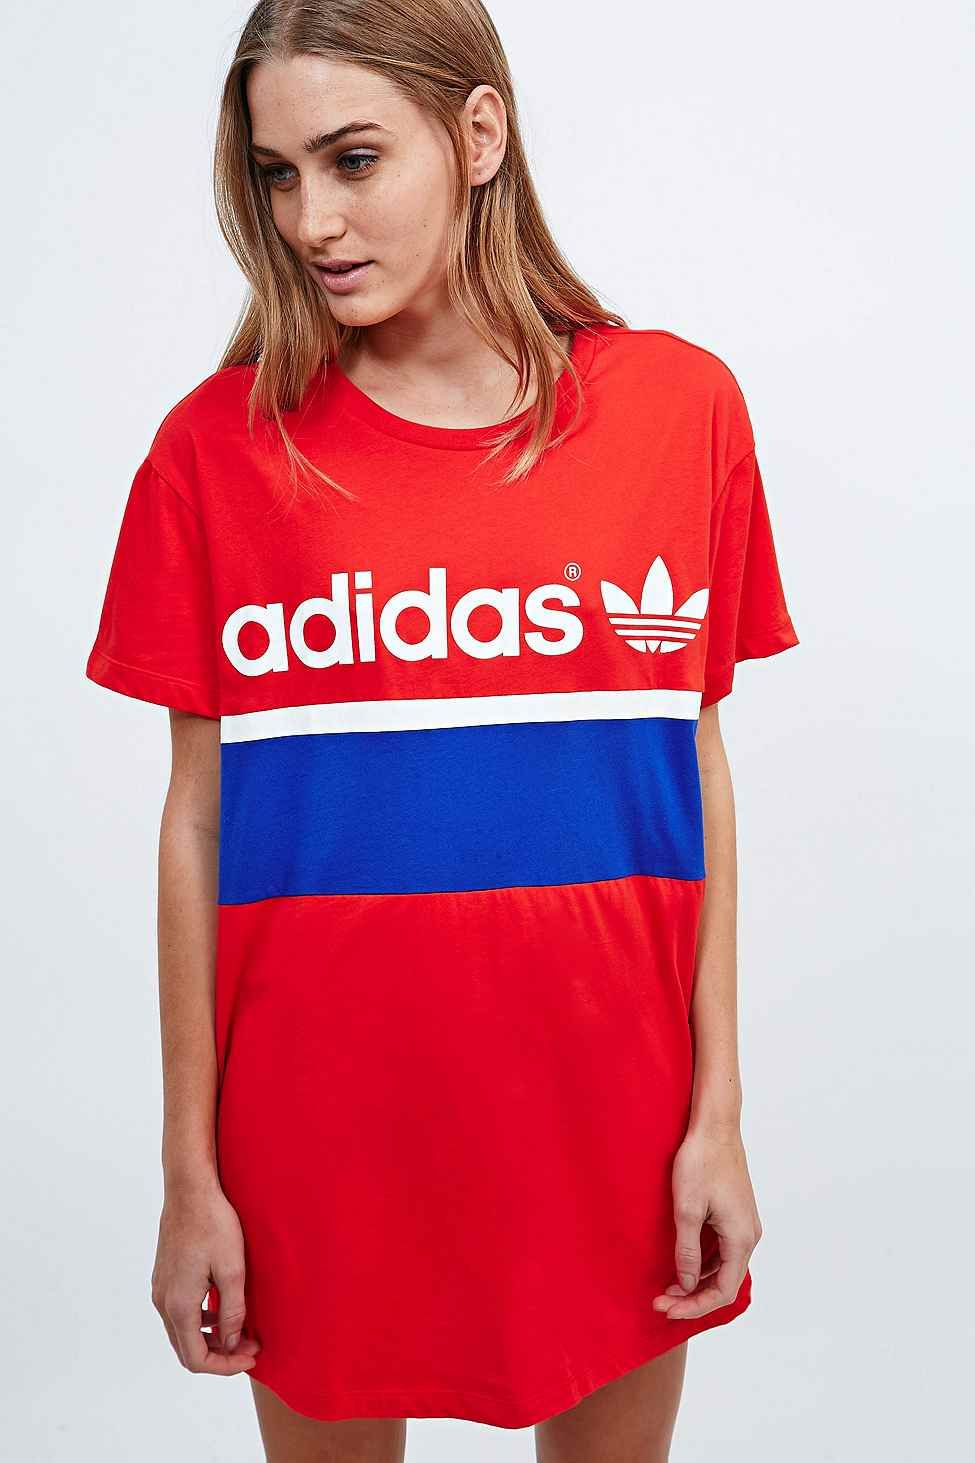 45290f11f37 Adidas City Tee Dress in Red - Urban Outfitters | Adidas | Adidas ...